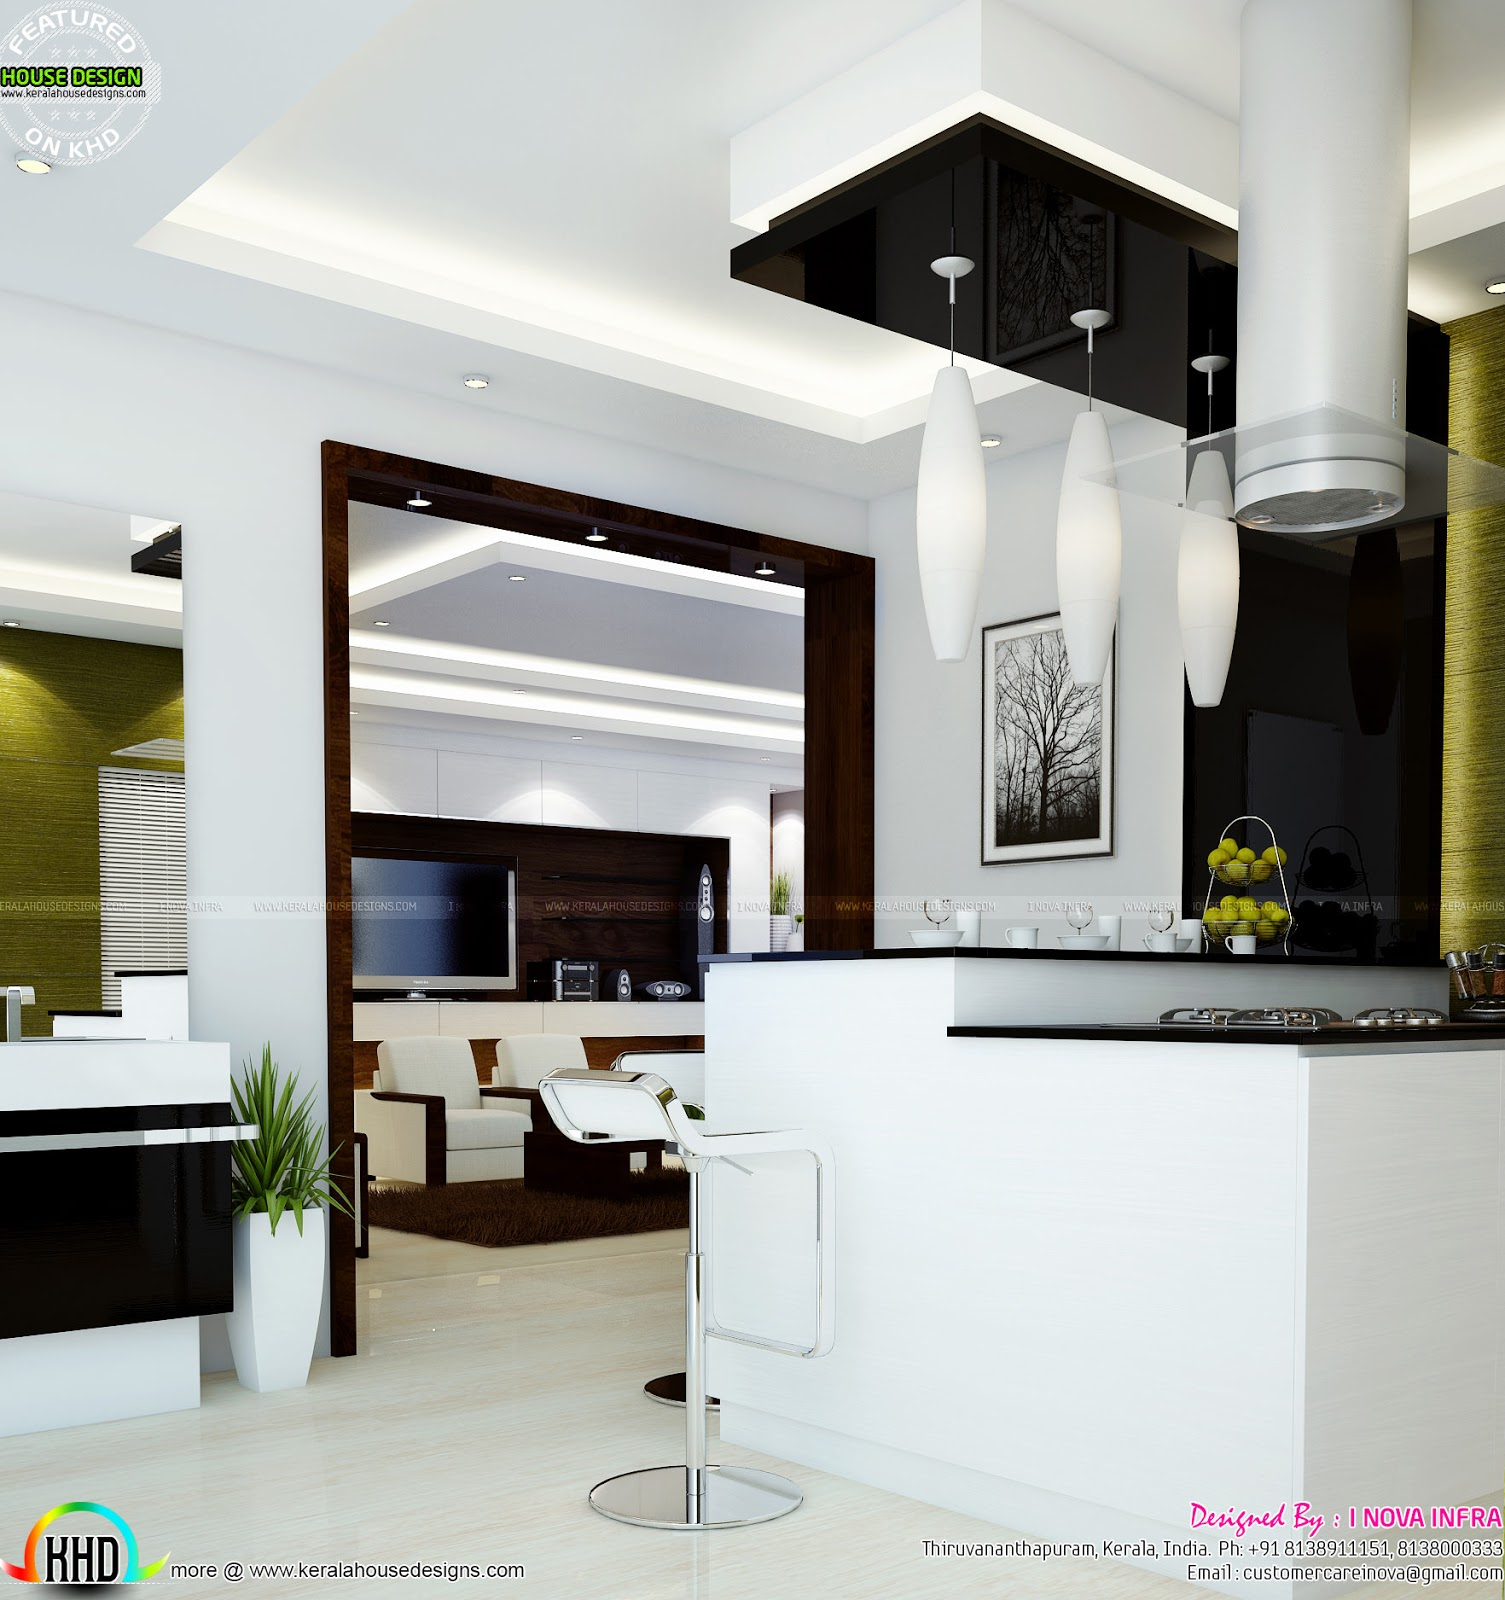 Kitchen Interior Design: Home Interior Designs By I Nova Infra